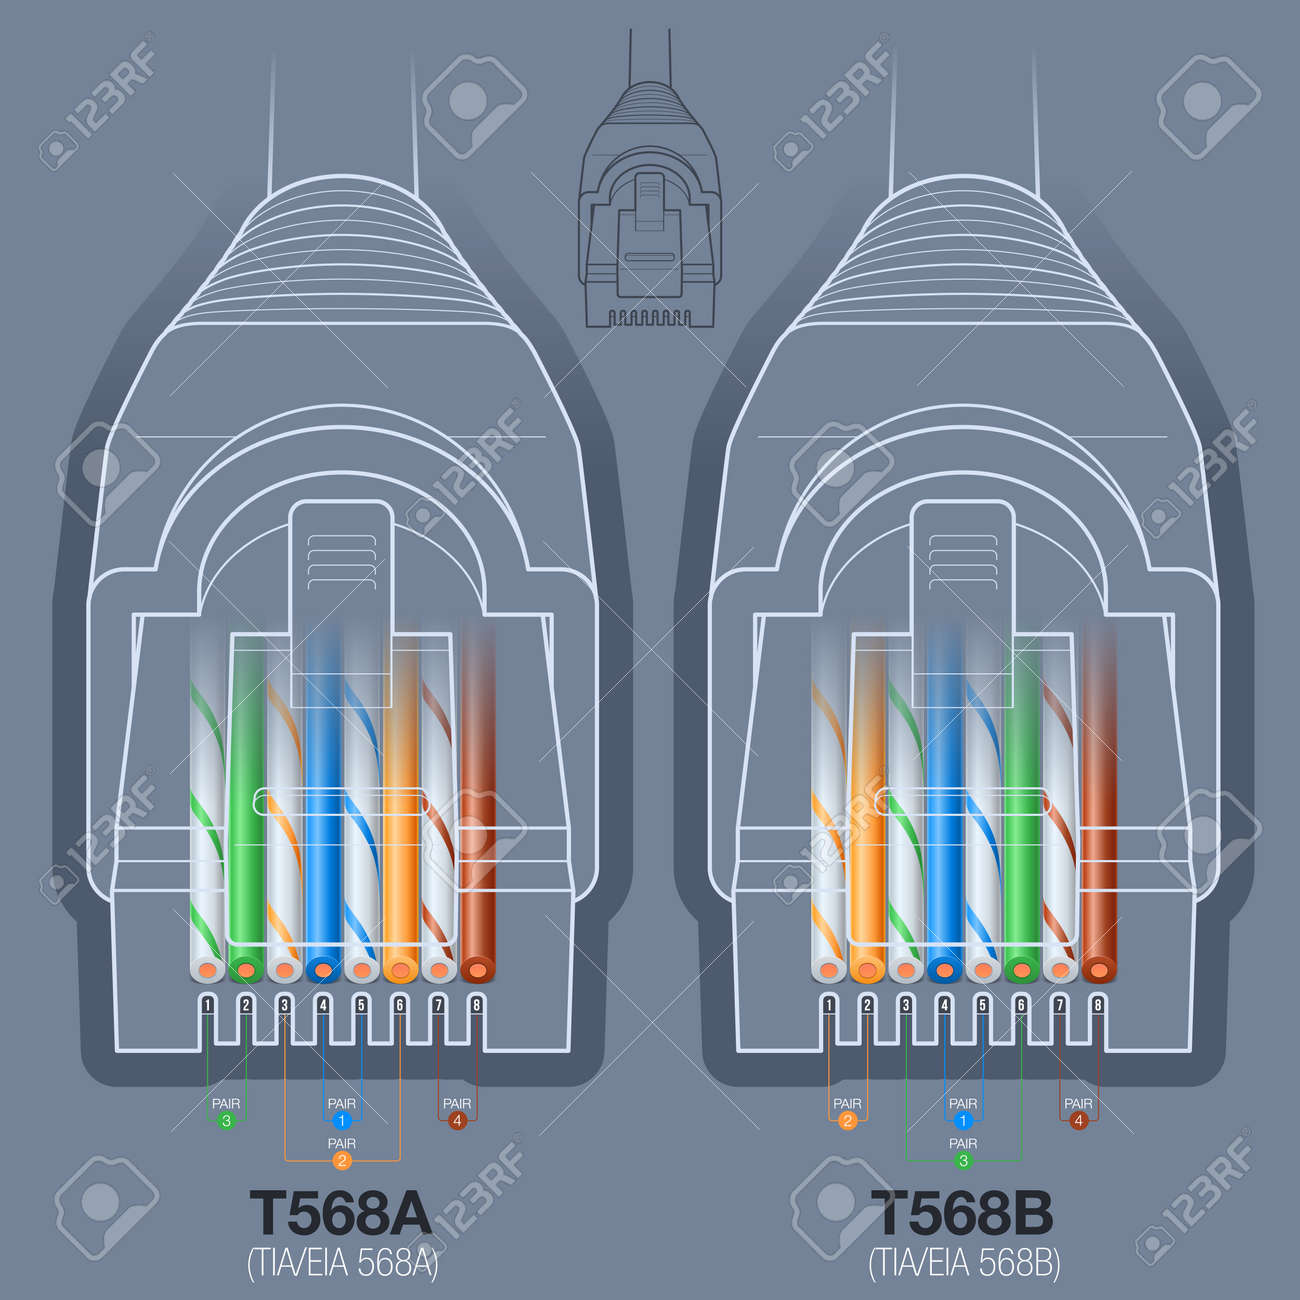 rj45 network cable connector t568a t568b wiring diagram royalty rj45 network cable connector t568a t568b wiring diagram stock vector 45694360